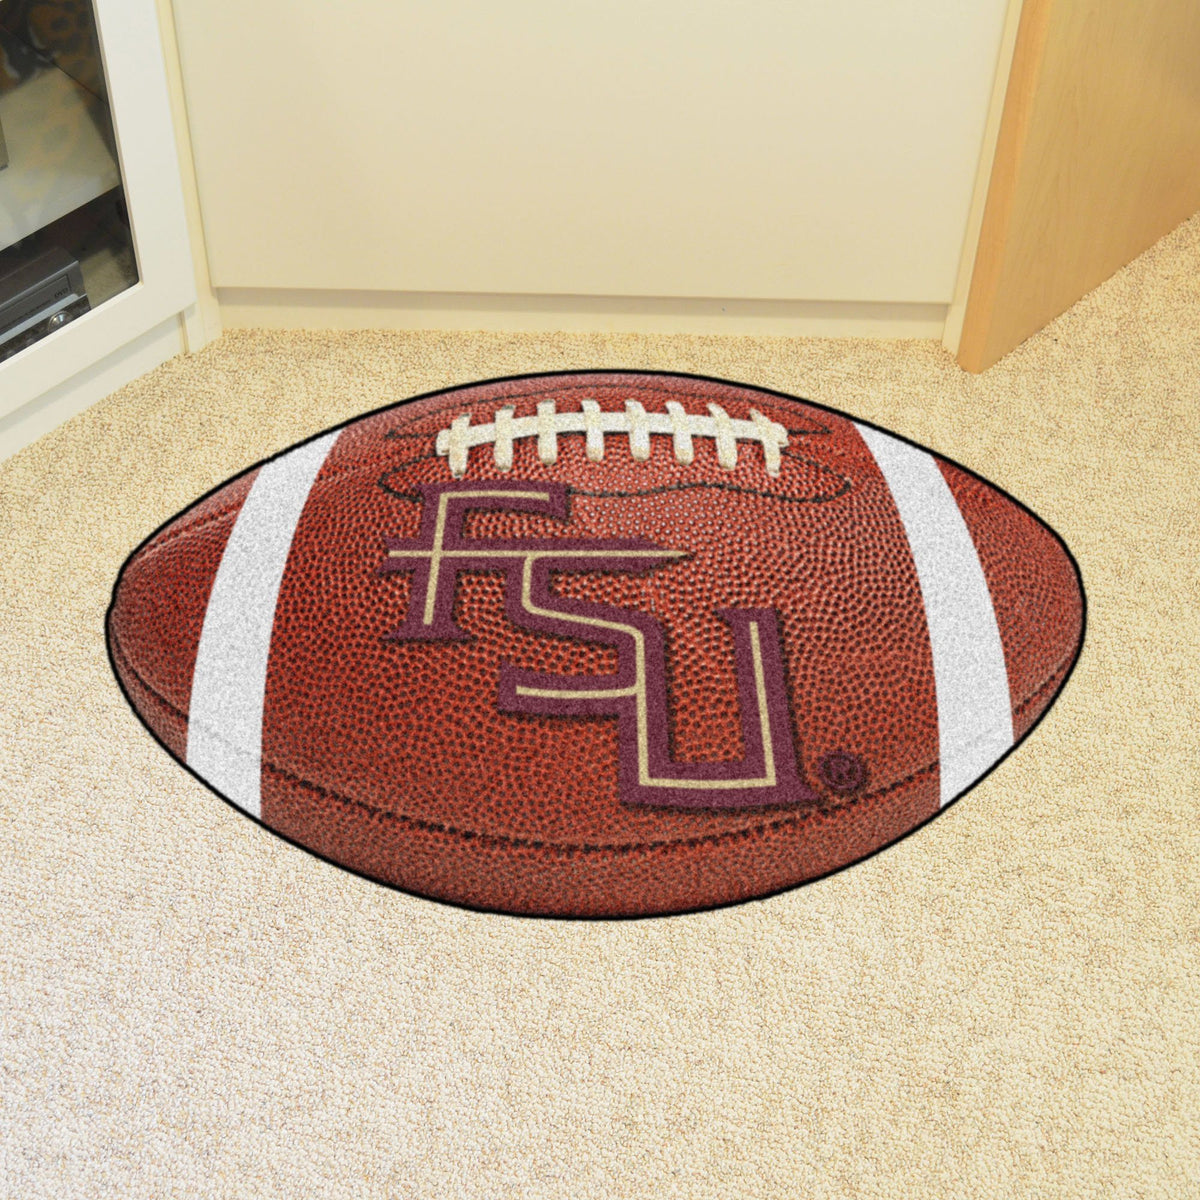 Collegiate - Football Mat: A - K Collegiate Mats, Rectangular Mats, Football Mat, Collegiate, Home Fan Mats Florida State 2